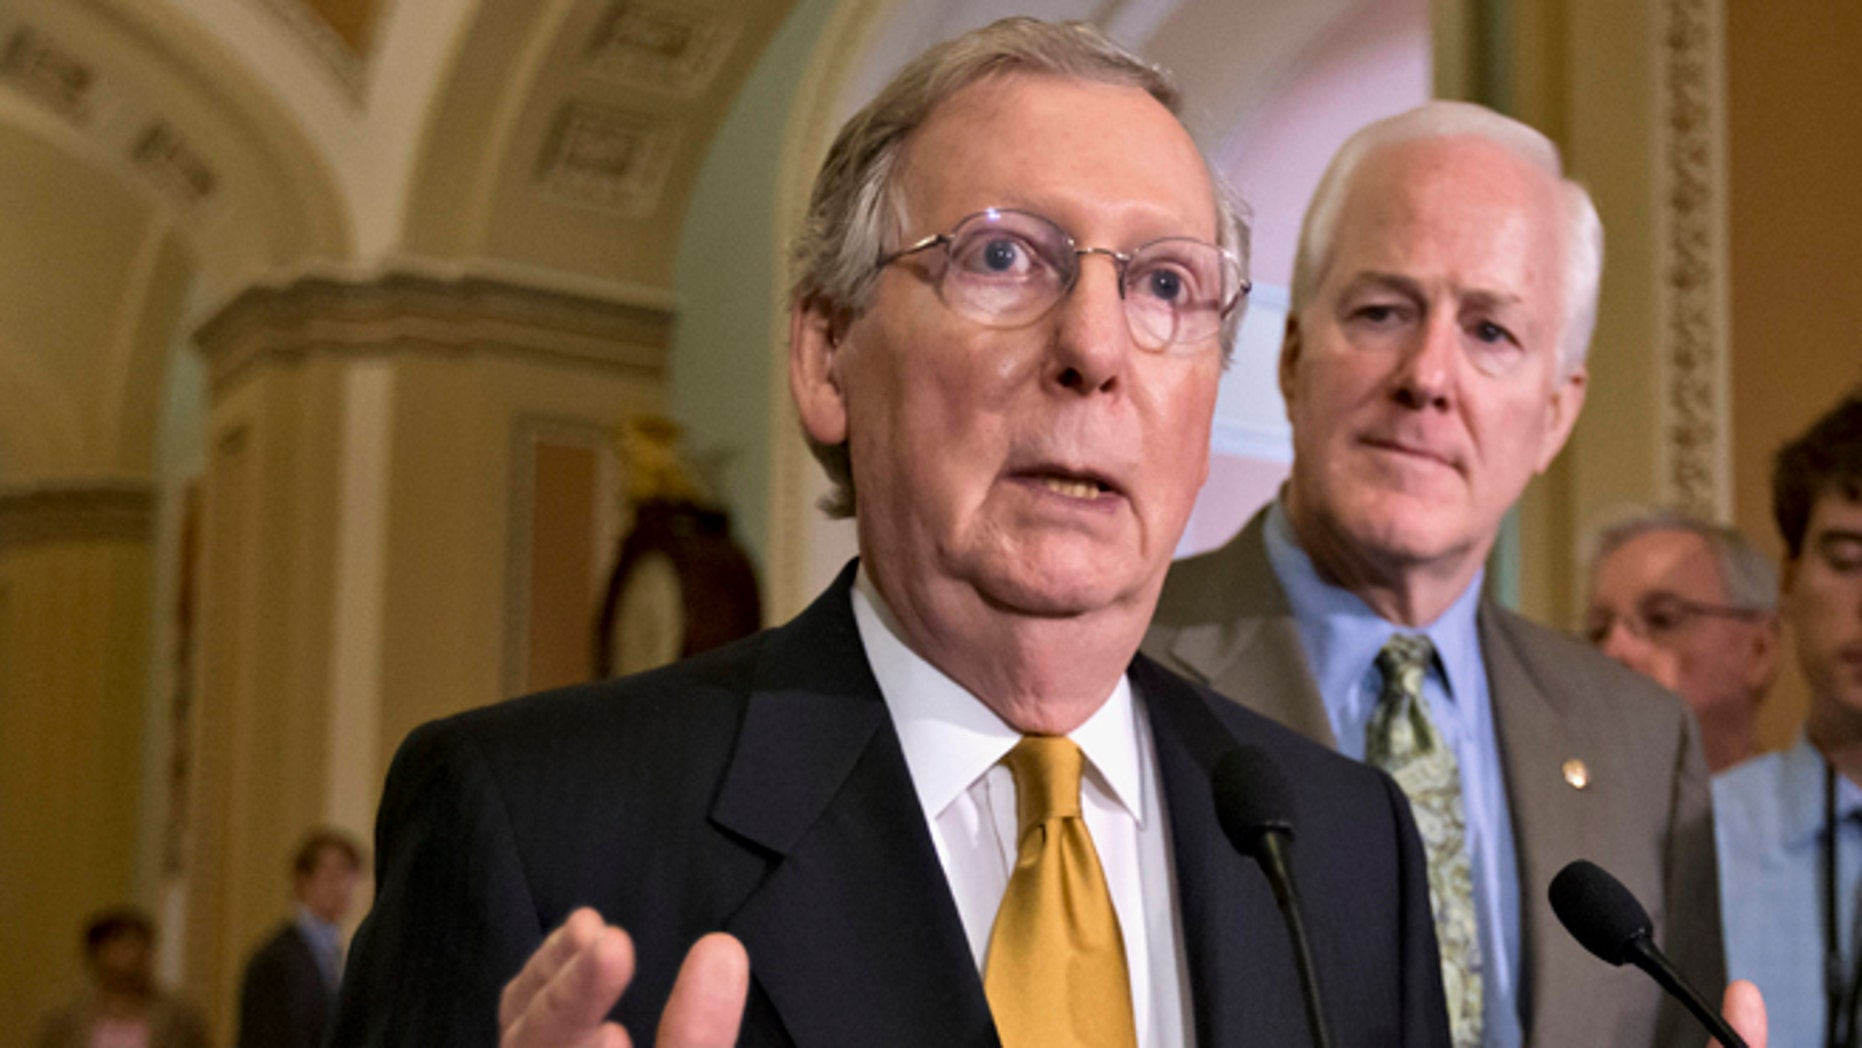 FILE: June 11, 2013: Then-Senate Minority Leader Mitch McConnell, R- Ky., left, and Minority Whip John Cornyn, R-Texas, speak with reporters on Capitol Hill, in Washington, D.C.